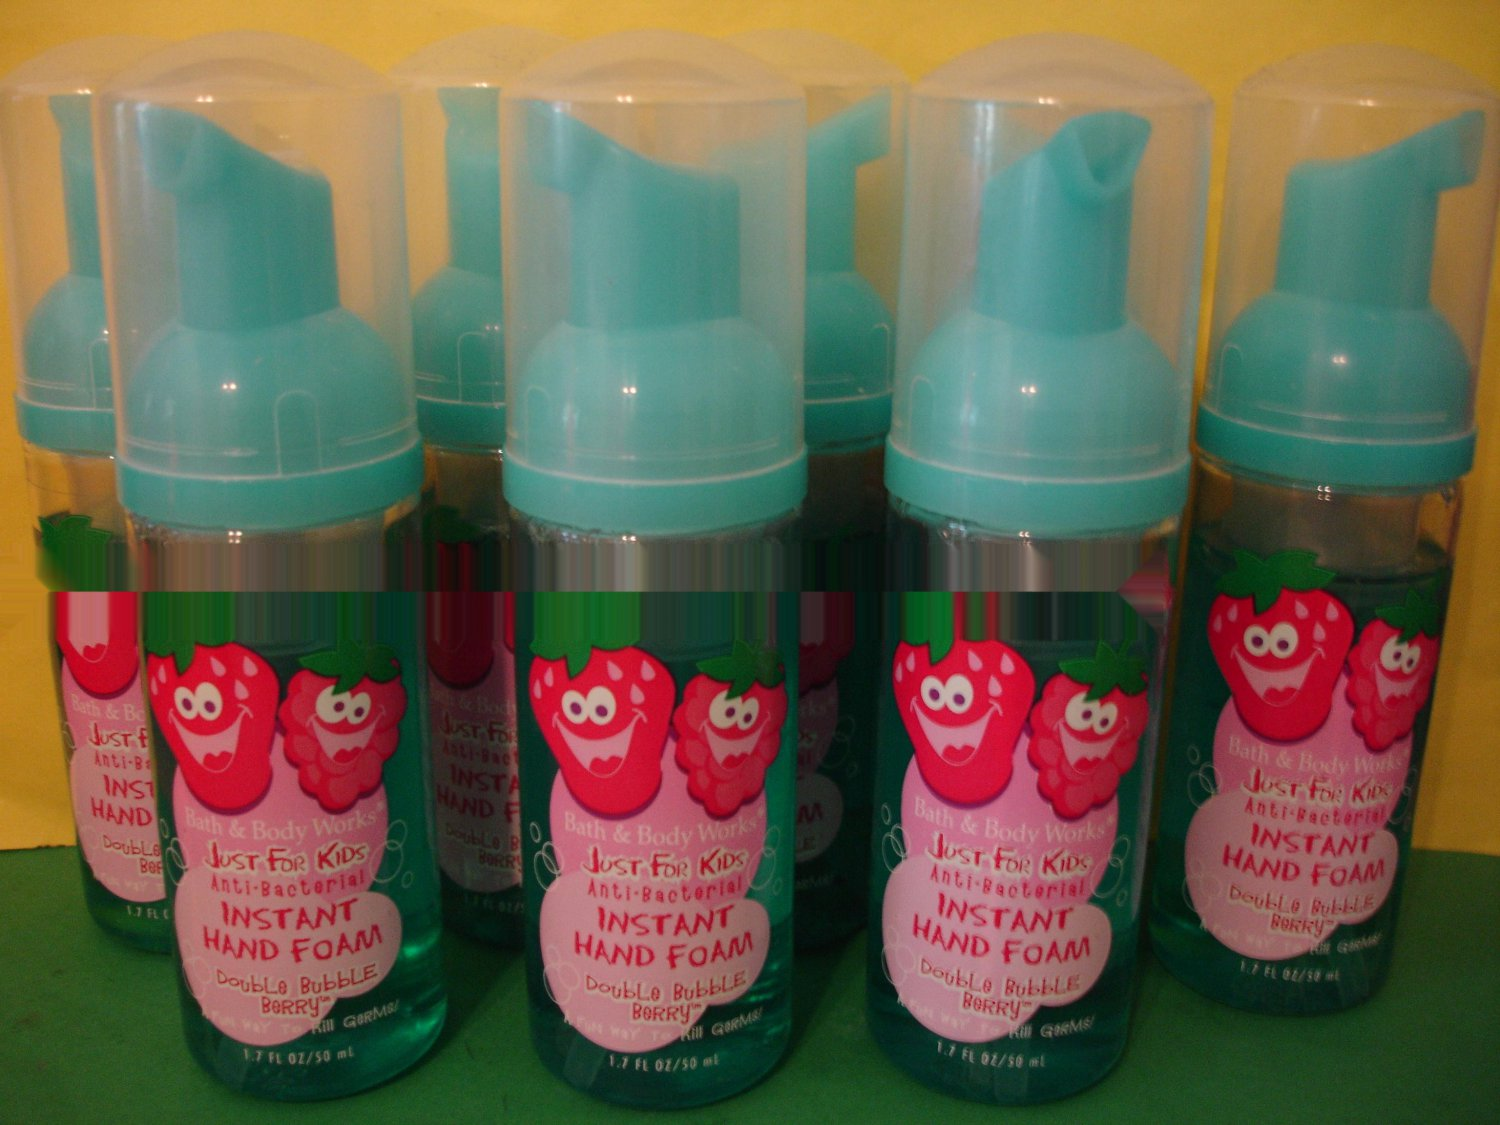 Bath & Body Works 8 Double Bubble Berry Kids Instant Hand Foam